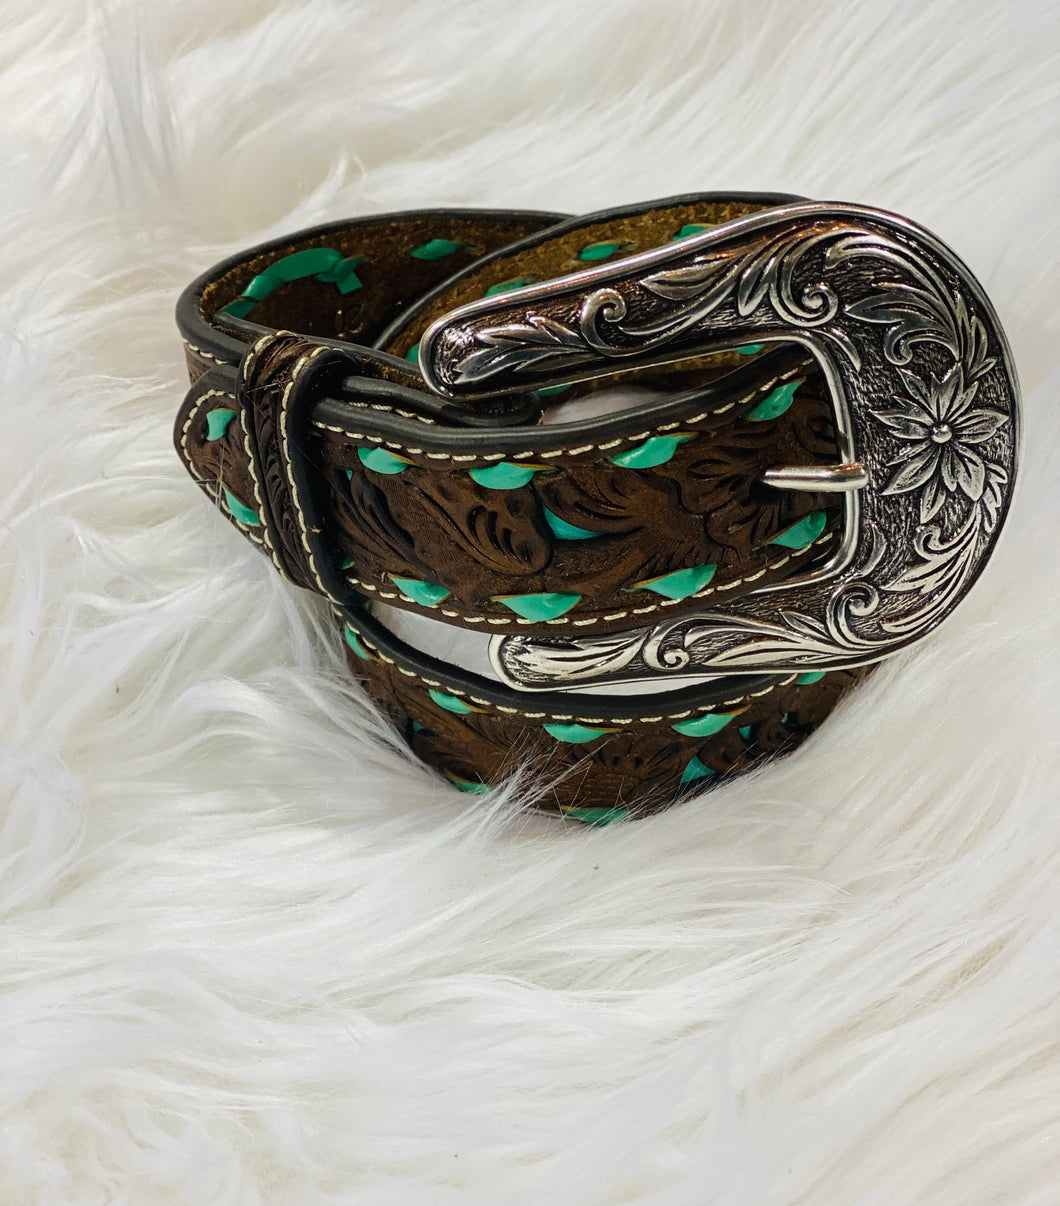 Brown Floral Print & Turquoise Stitching Belt